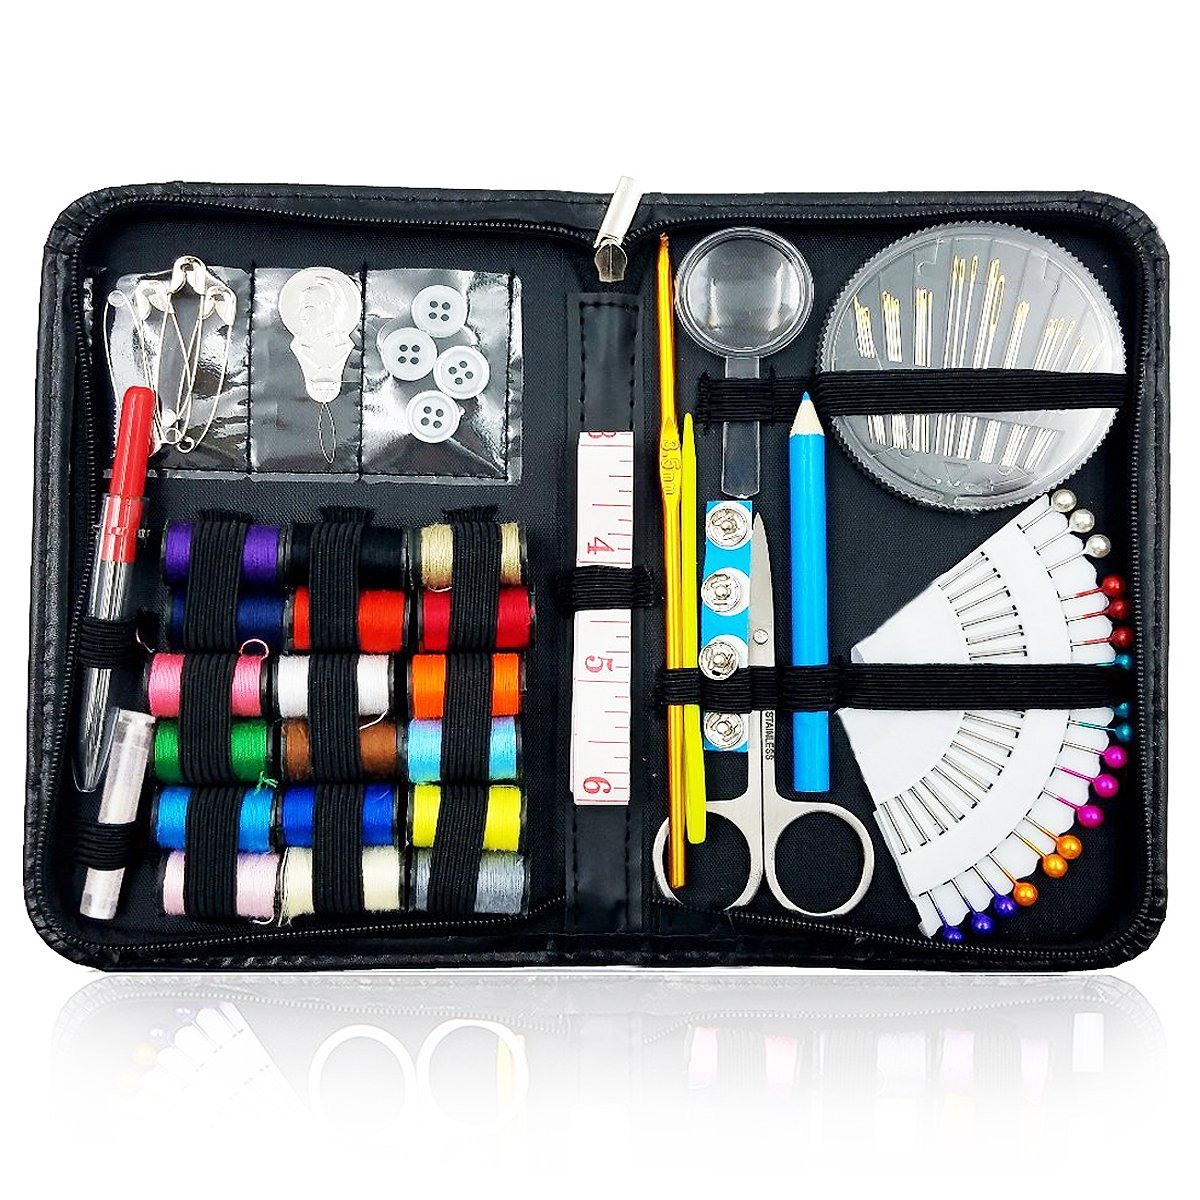 Sewing Kit Over 130 Premium Sewing Supplies for Travel Home Beginners Adults Kids Girls Emergency with Multifunctional Essentials Sewing Accessories ( pencil color may change ) 4337015766